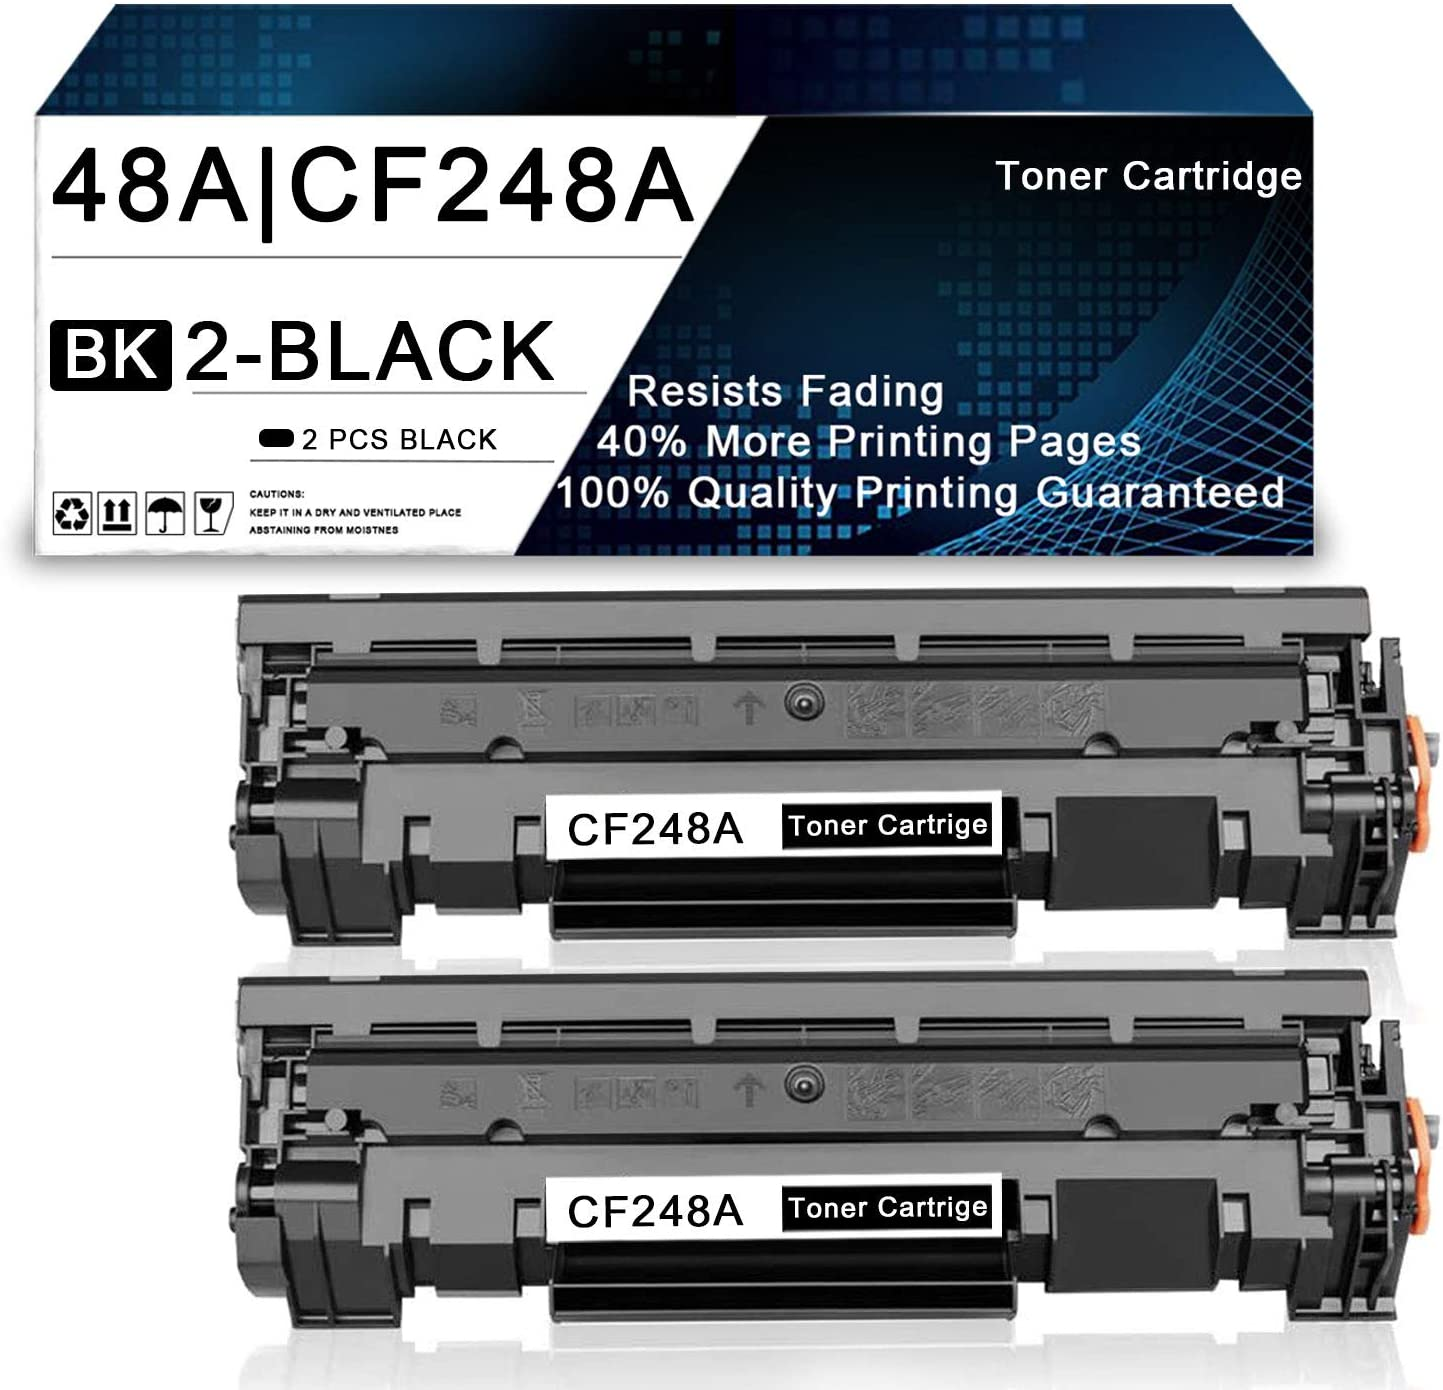 2 Pack Black 48A | CF248A Compatible Toner Cartridge Replacement for HP Laserjet Pro M15a M15w MFP M28a MFP M28w MFP M29w MFP M30w MFP M31w Printers Toner Cartridge.